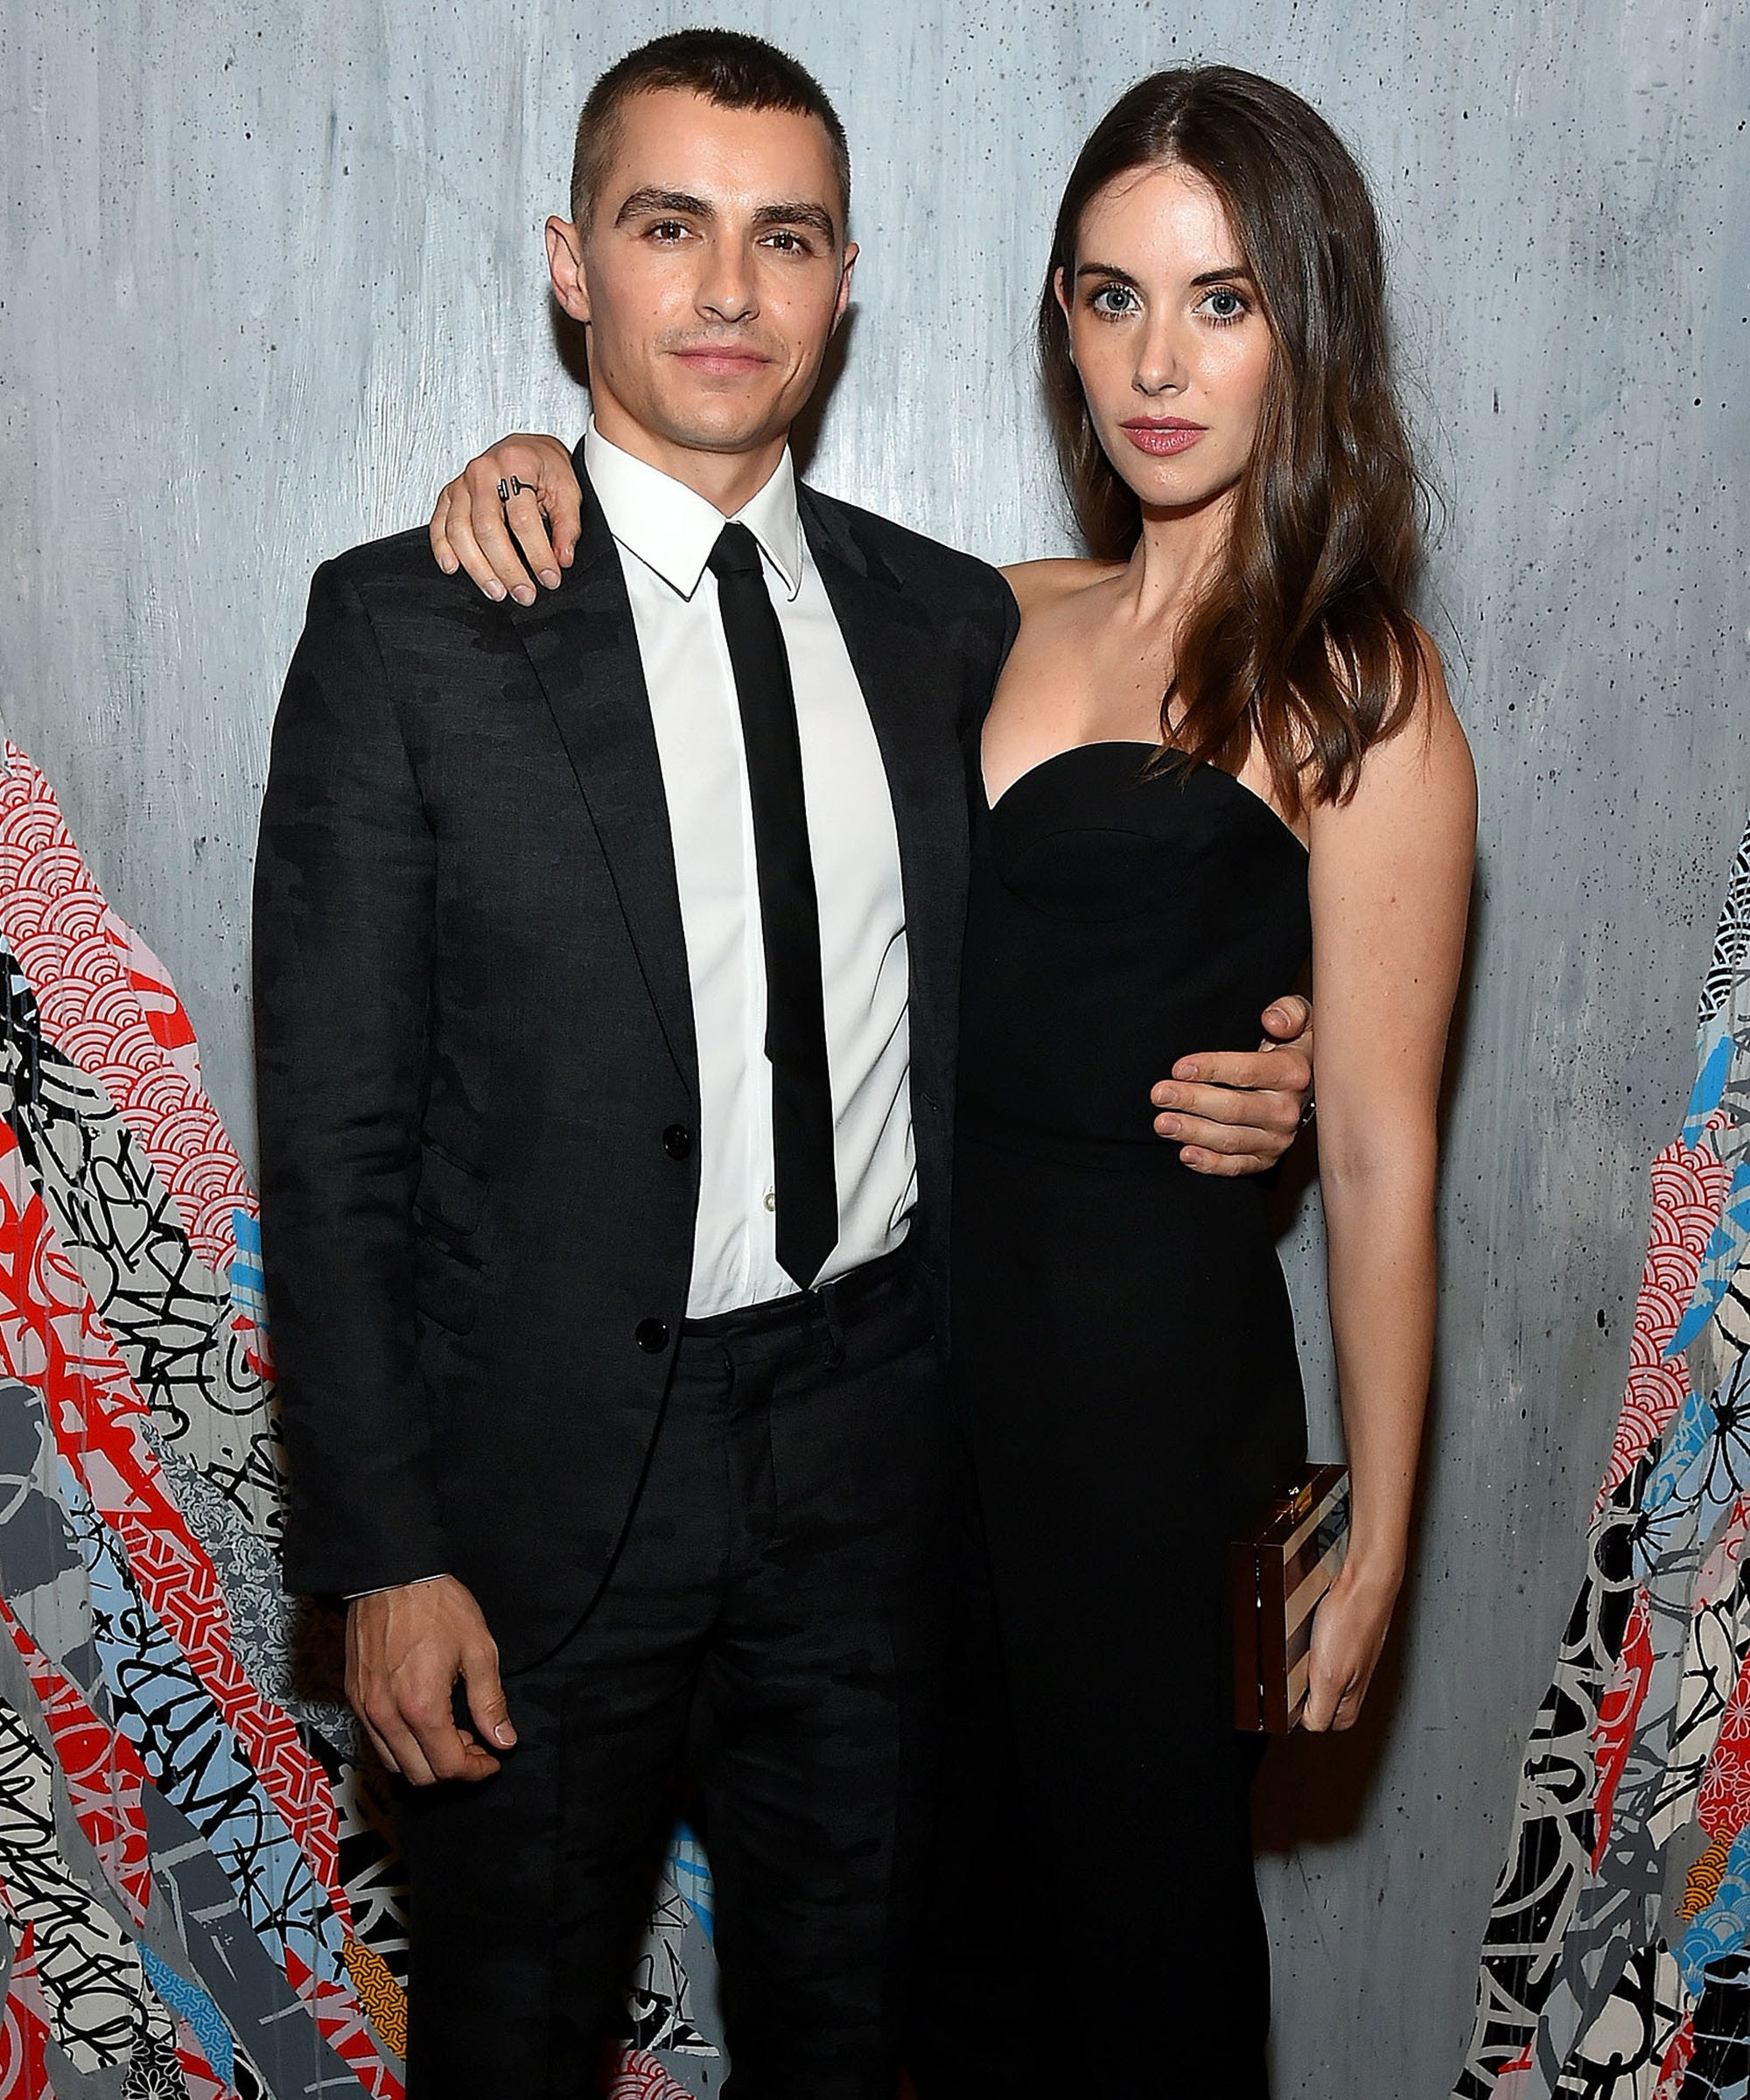 Alison Brie And Dave Franco Wedding.Alison Brie Dave Franco Got Married